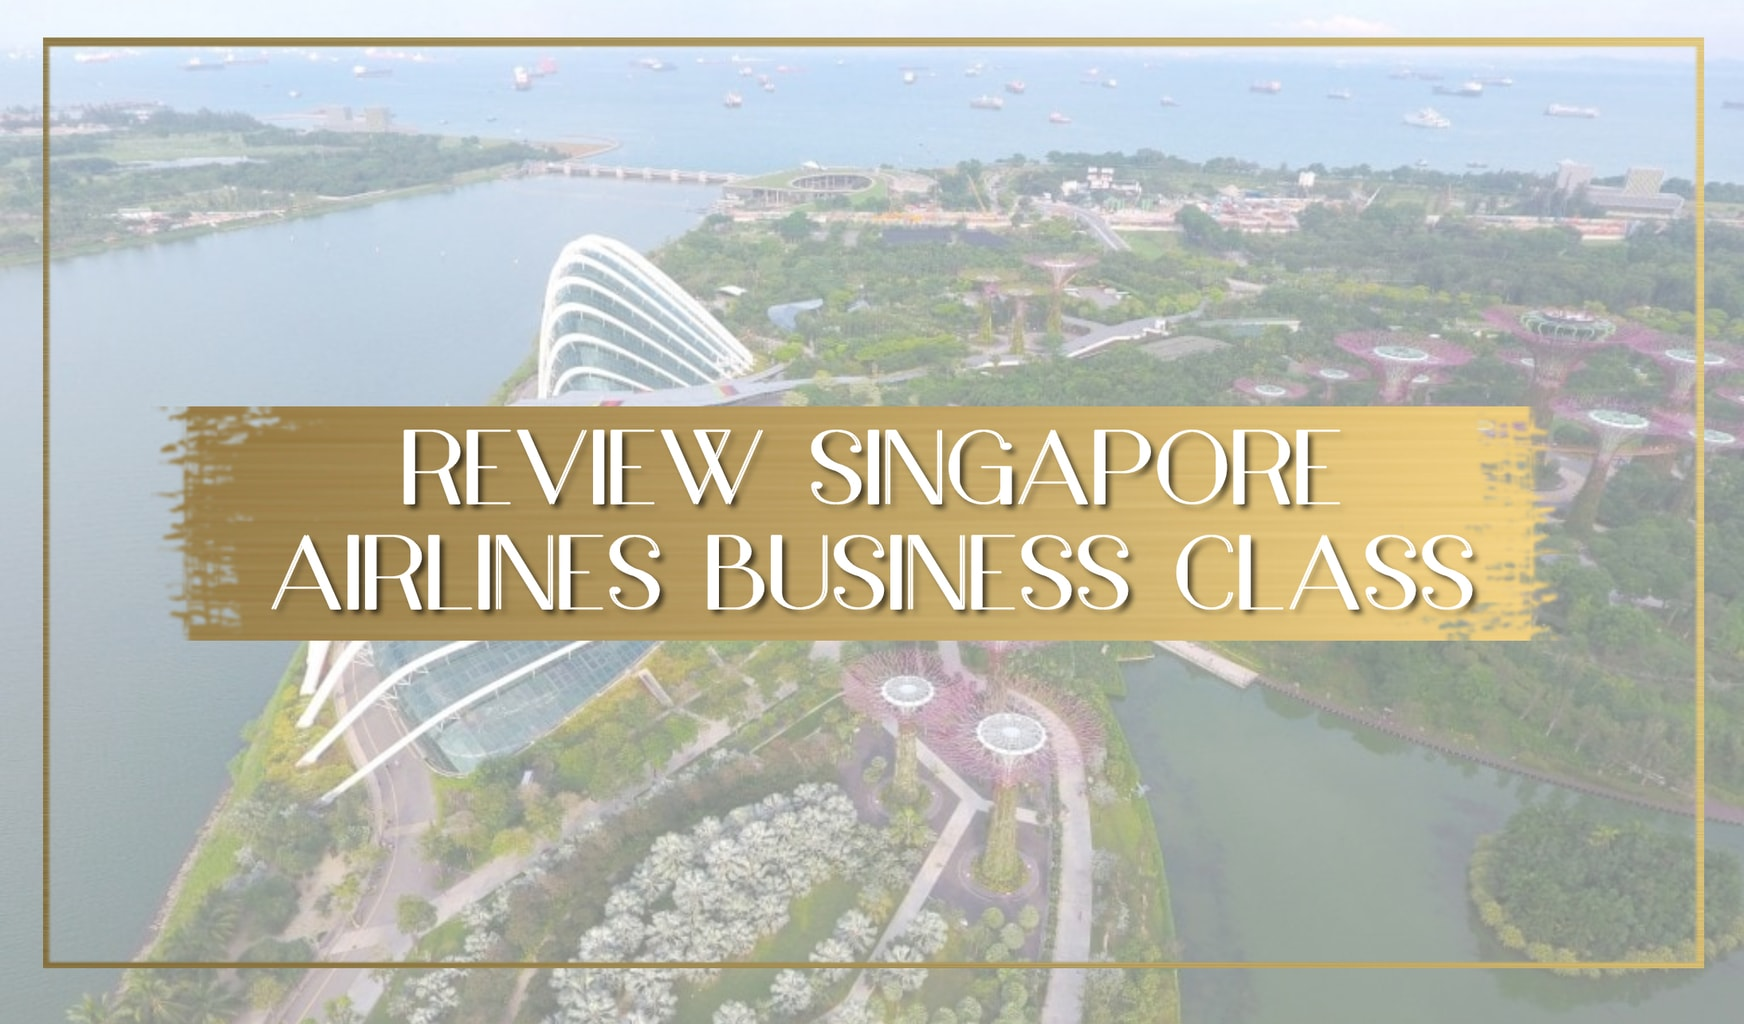 Singapore Airlines Business Class Main